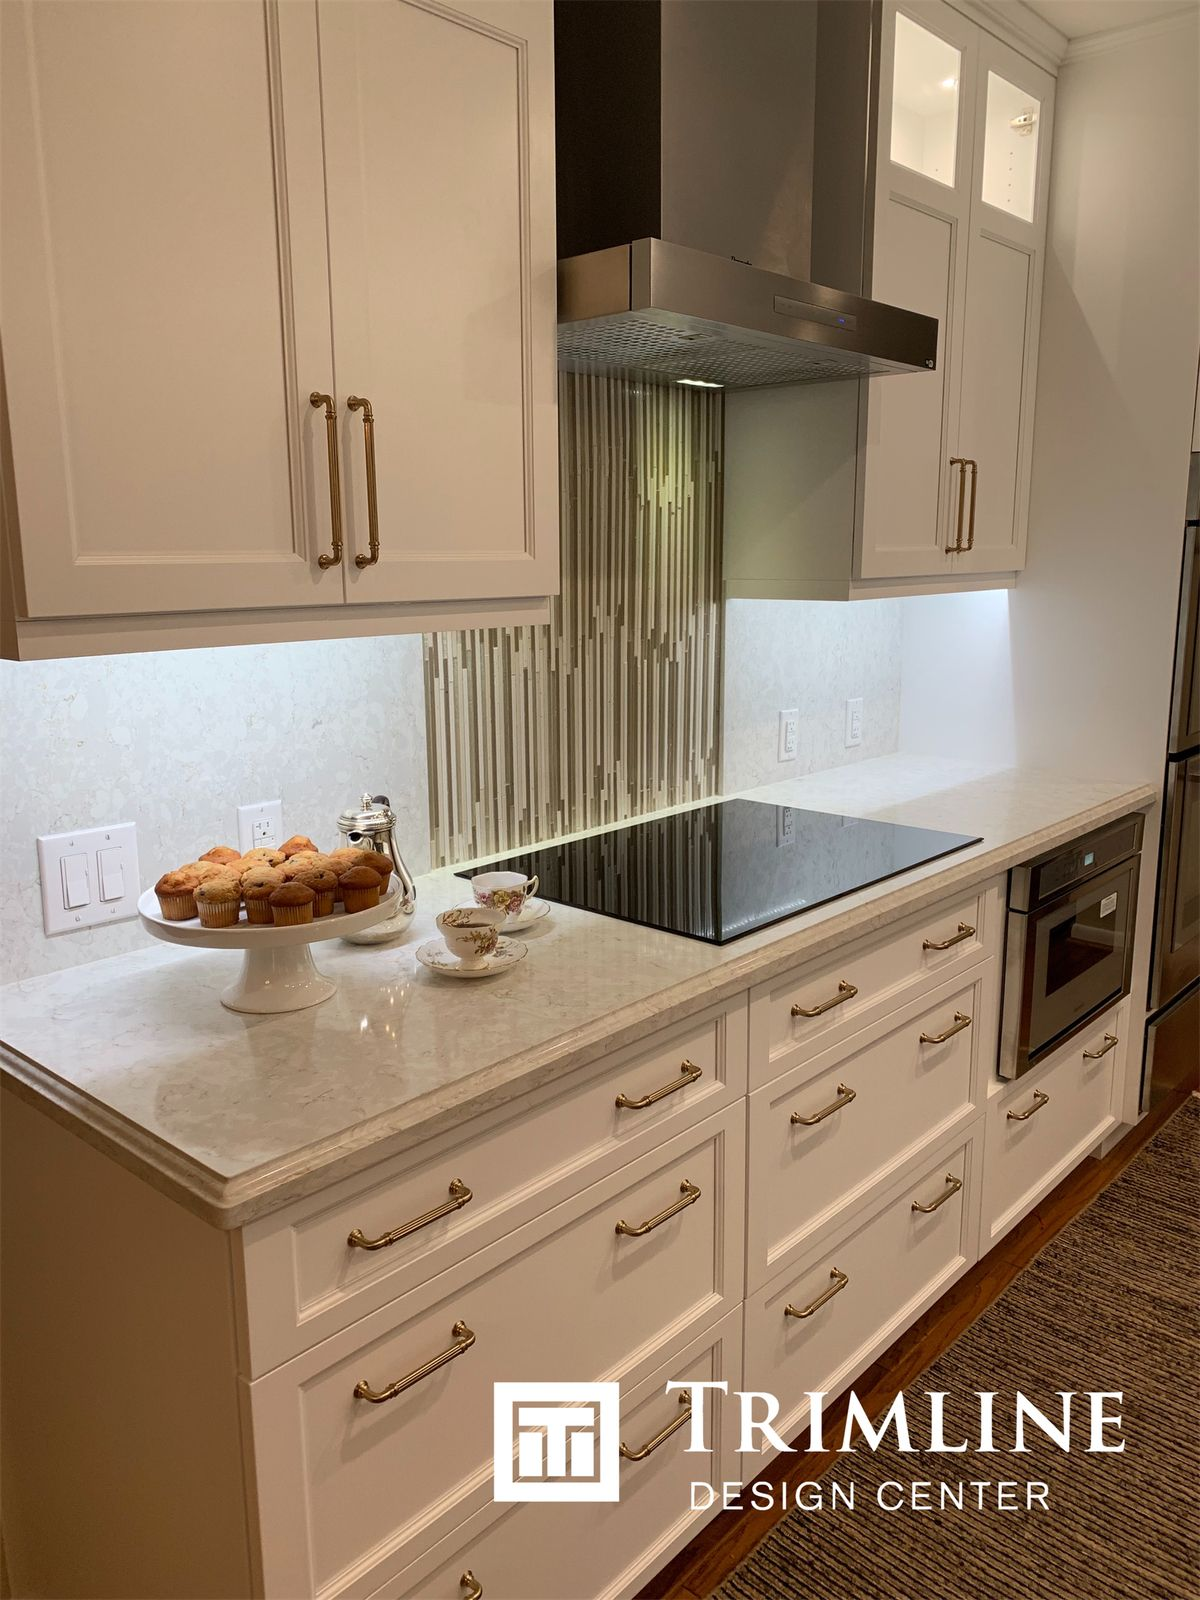 Quartz Countertops By Silestone In Lusso Finish With An Ogee Edge